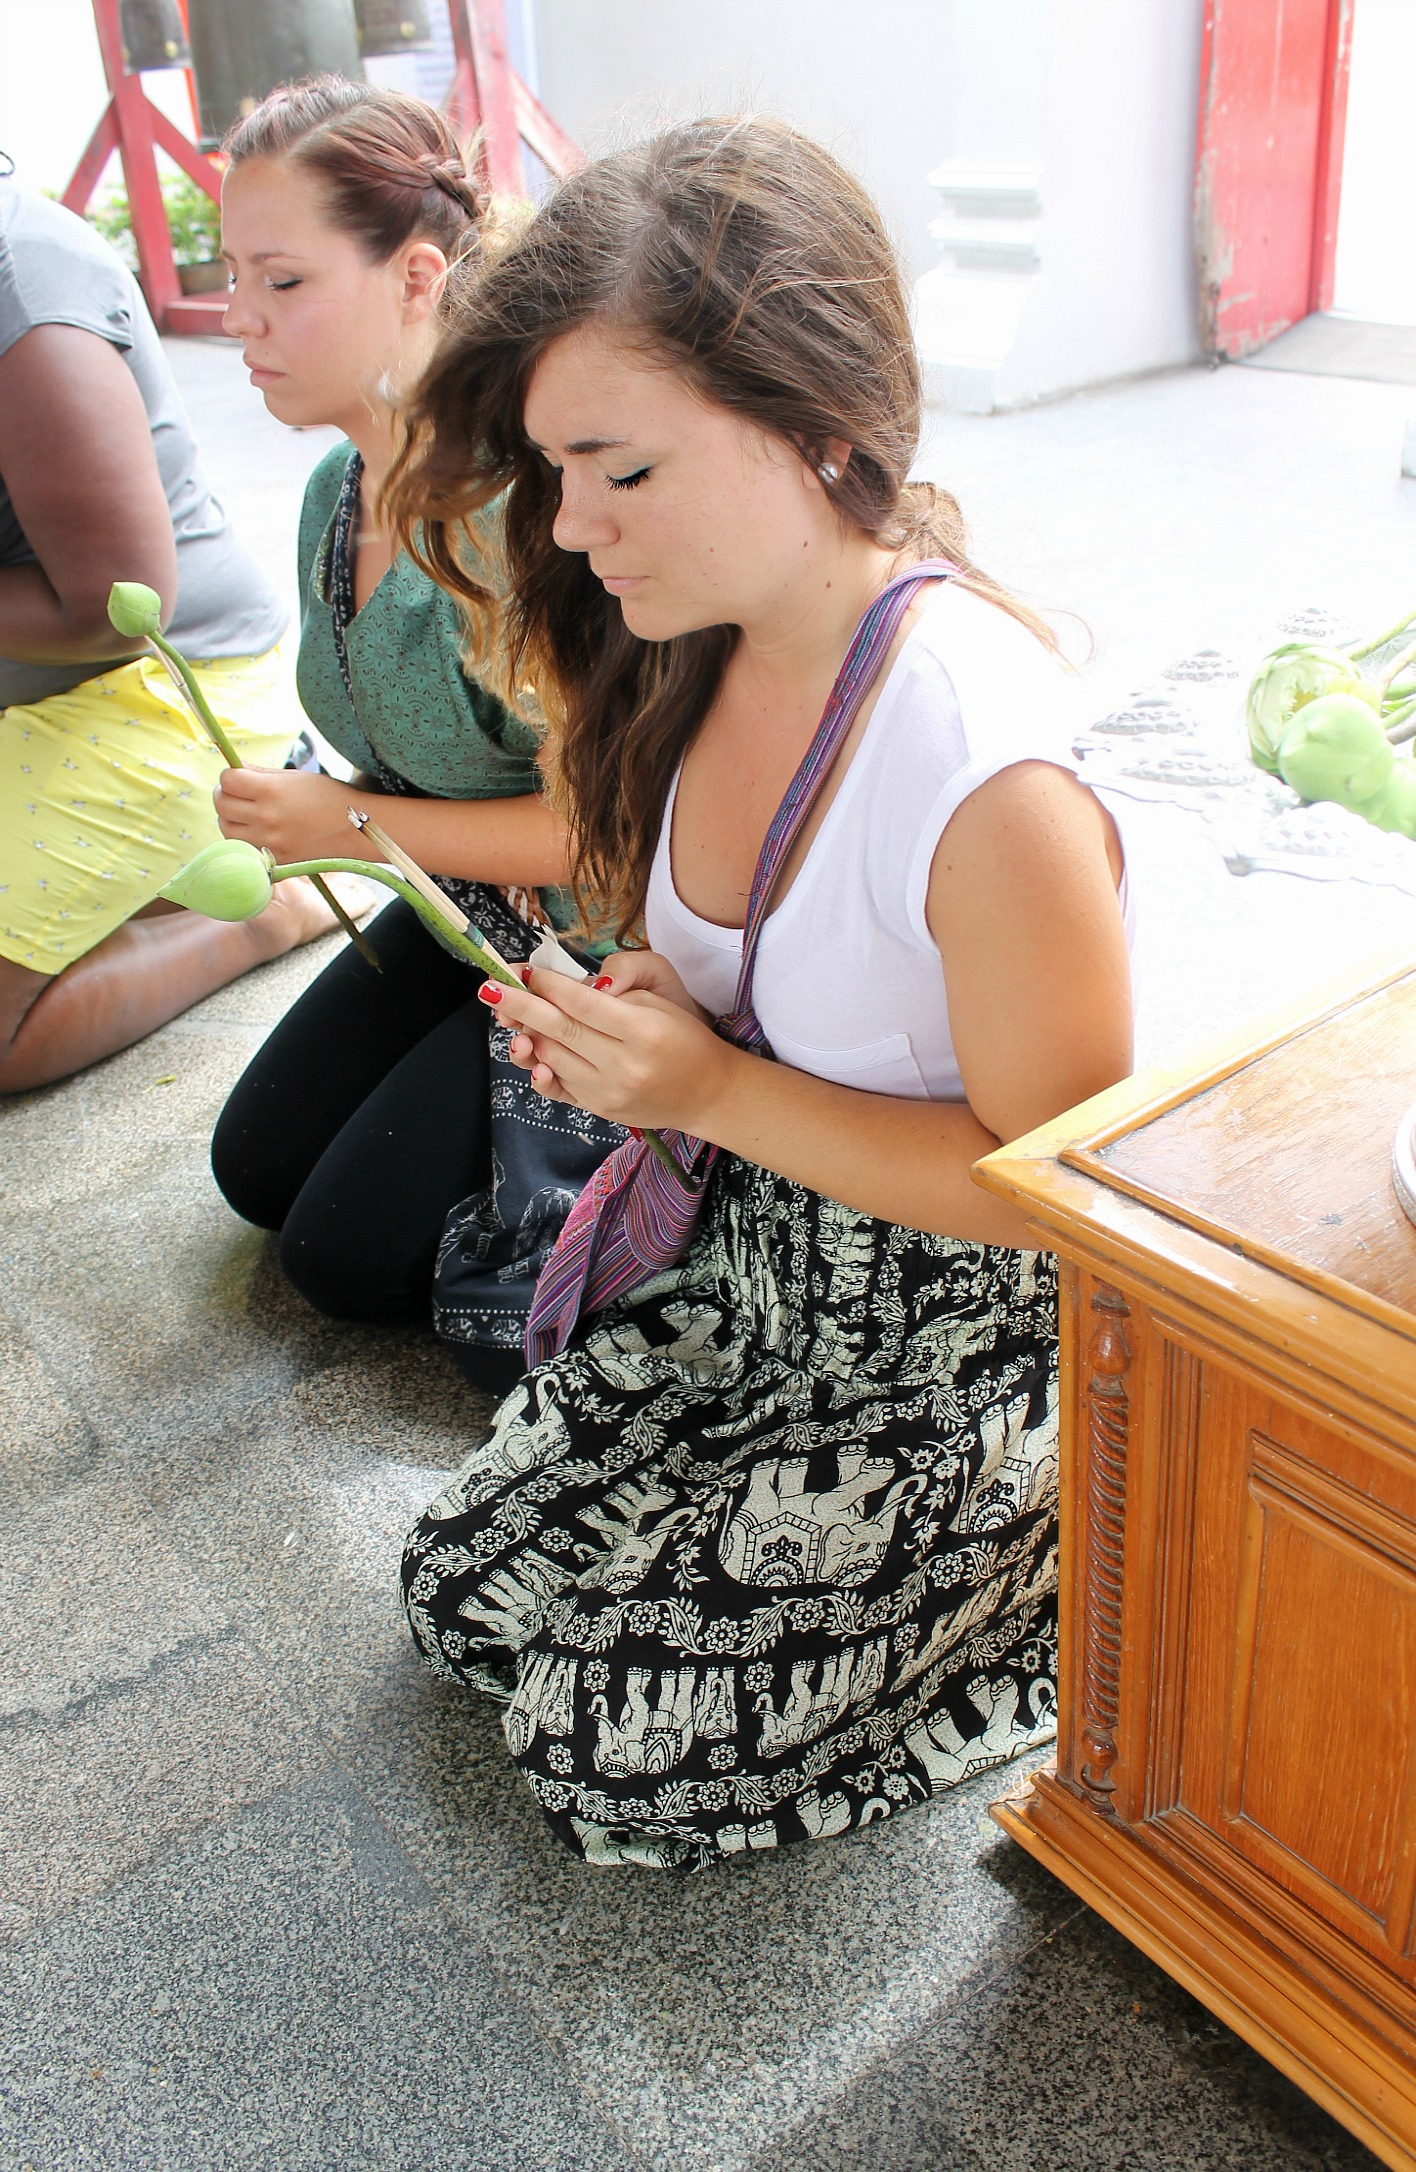 me wearing those nasty elephant pants before I knew they were probably made in a factory in China by children. don't buy them, k? shaking my head at myself. Thailand, 2013